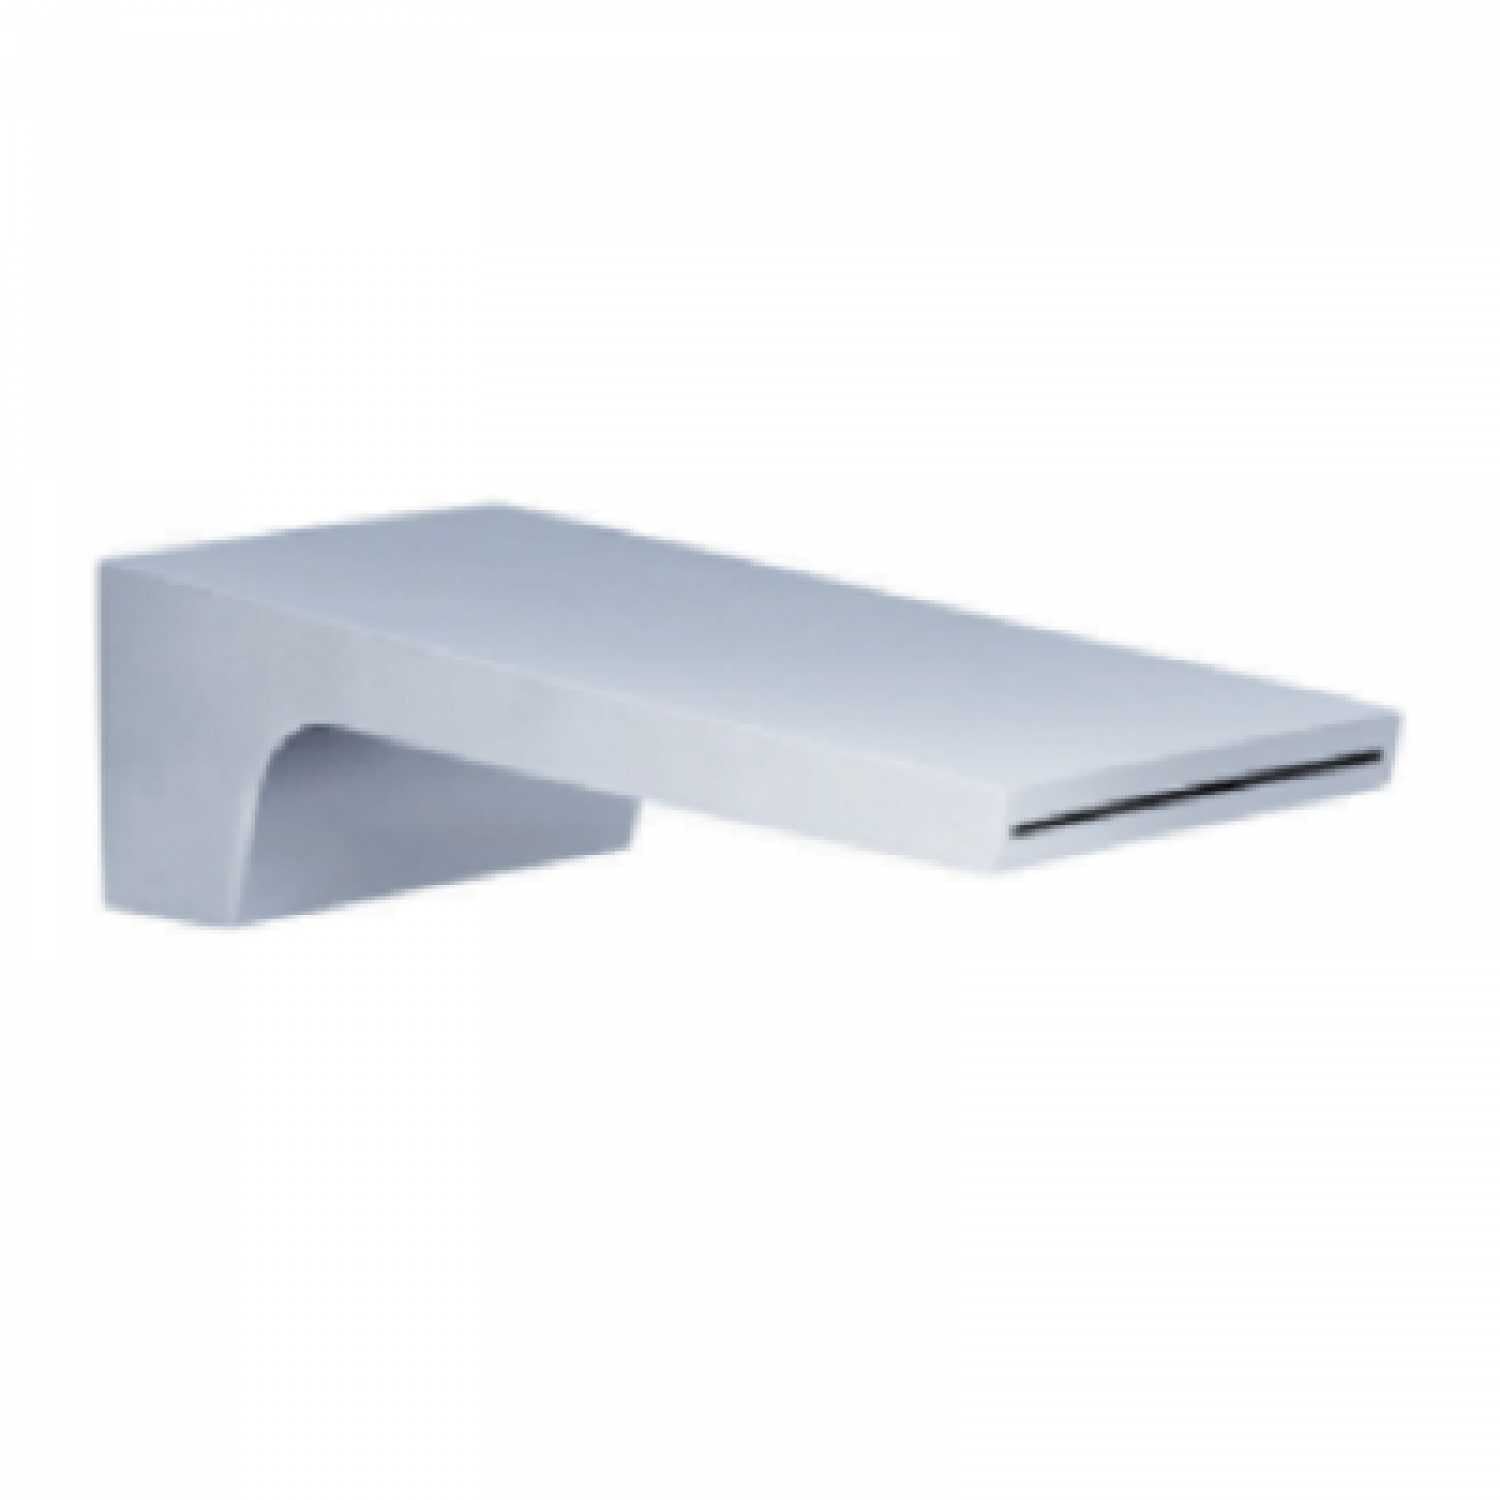 Waterfall Bath Spout-Straight Line